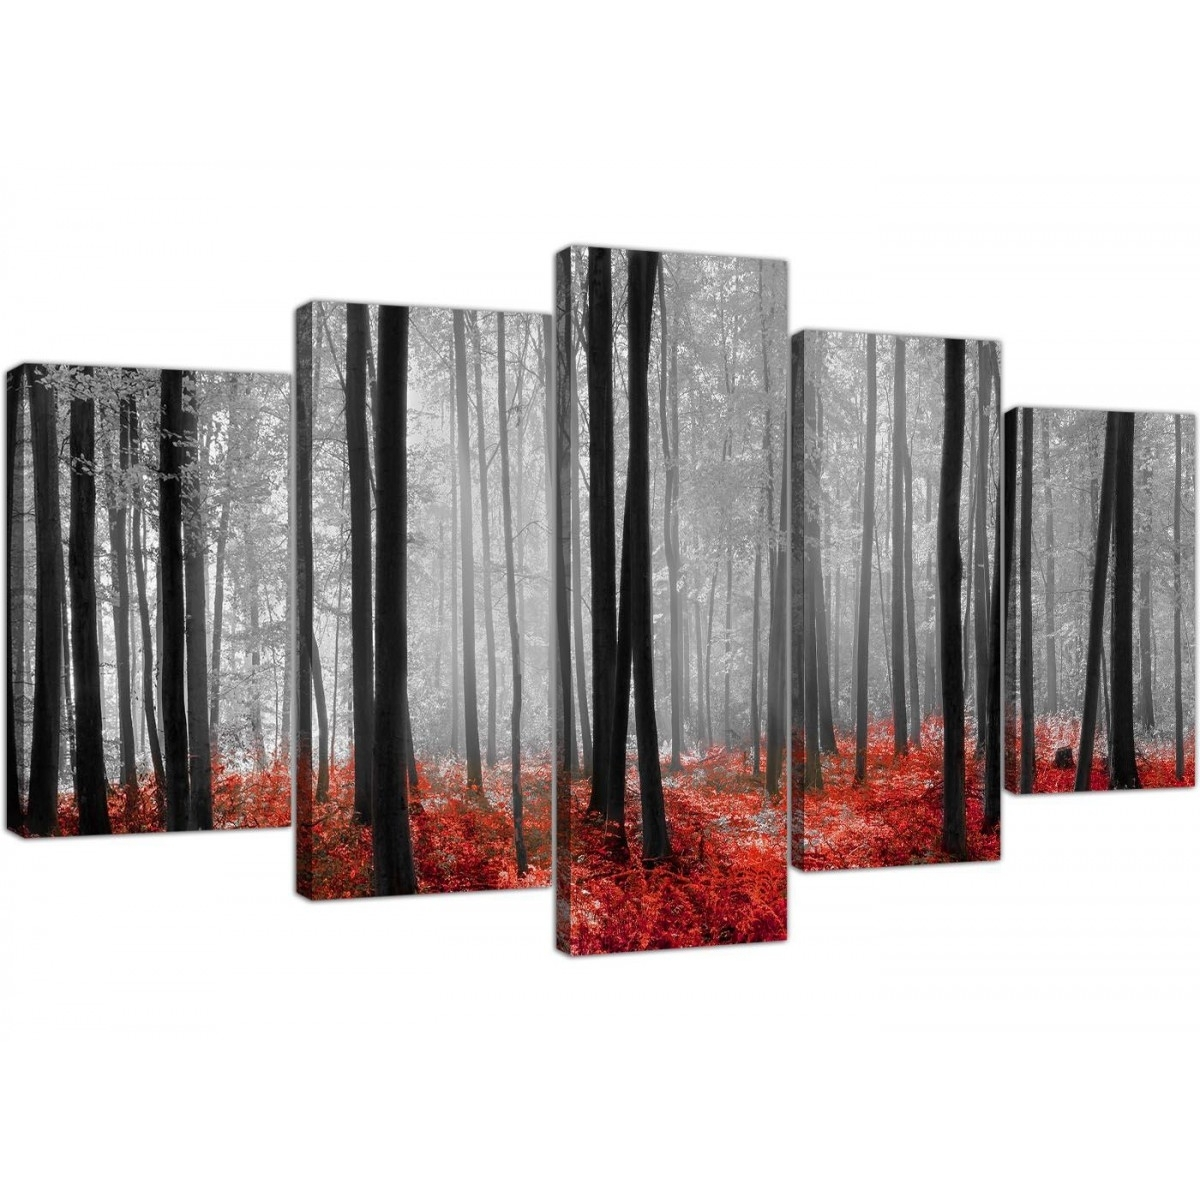 Extra Large Canvas Prints Of Red Forest Woodland Trees In Black & White With Most Current Red And Black Canvas Wall Art (Gallery 3 of 20)